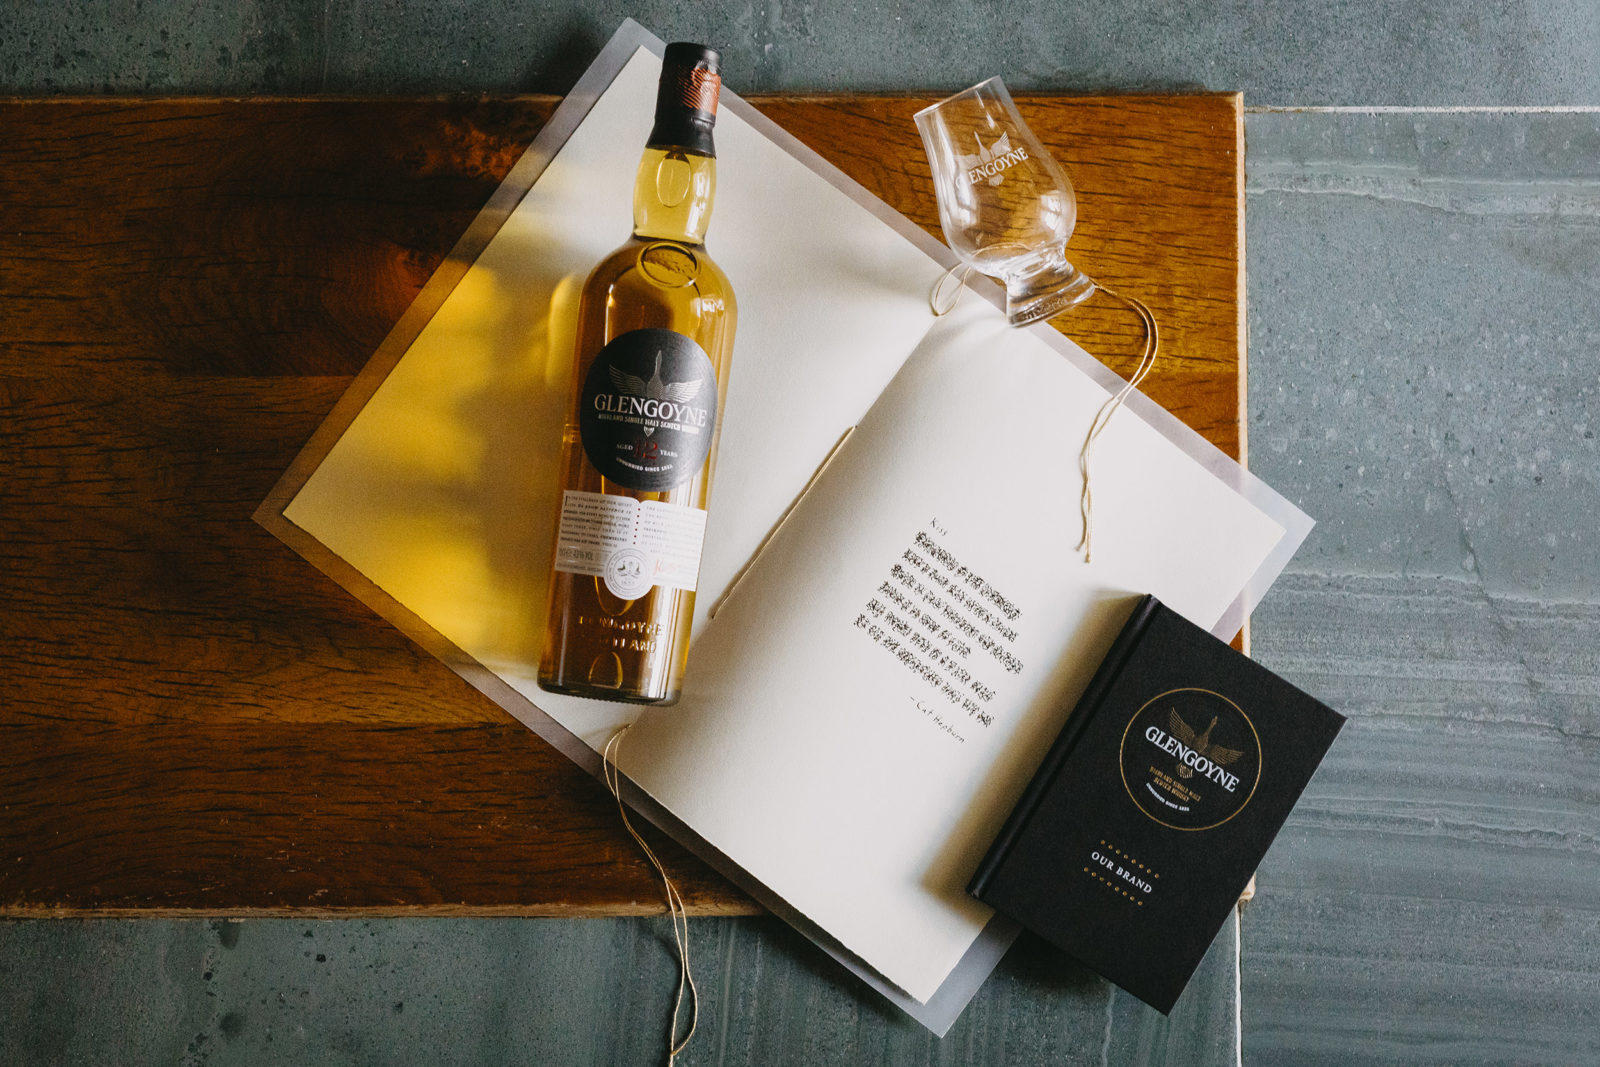 Glengoyne Celebrates New Look Branding And Eco-packaging With 'unhurried' Art Series photo